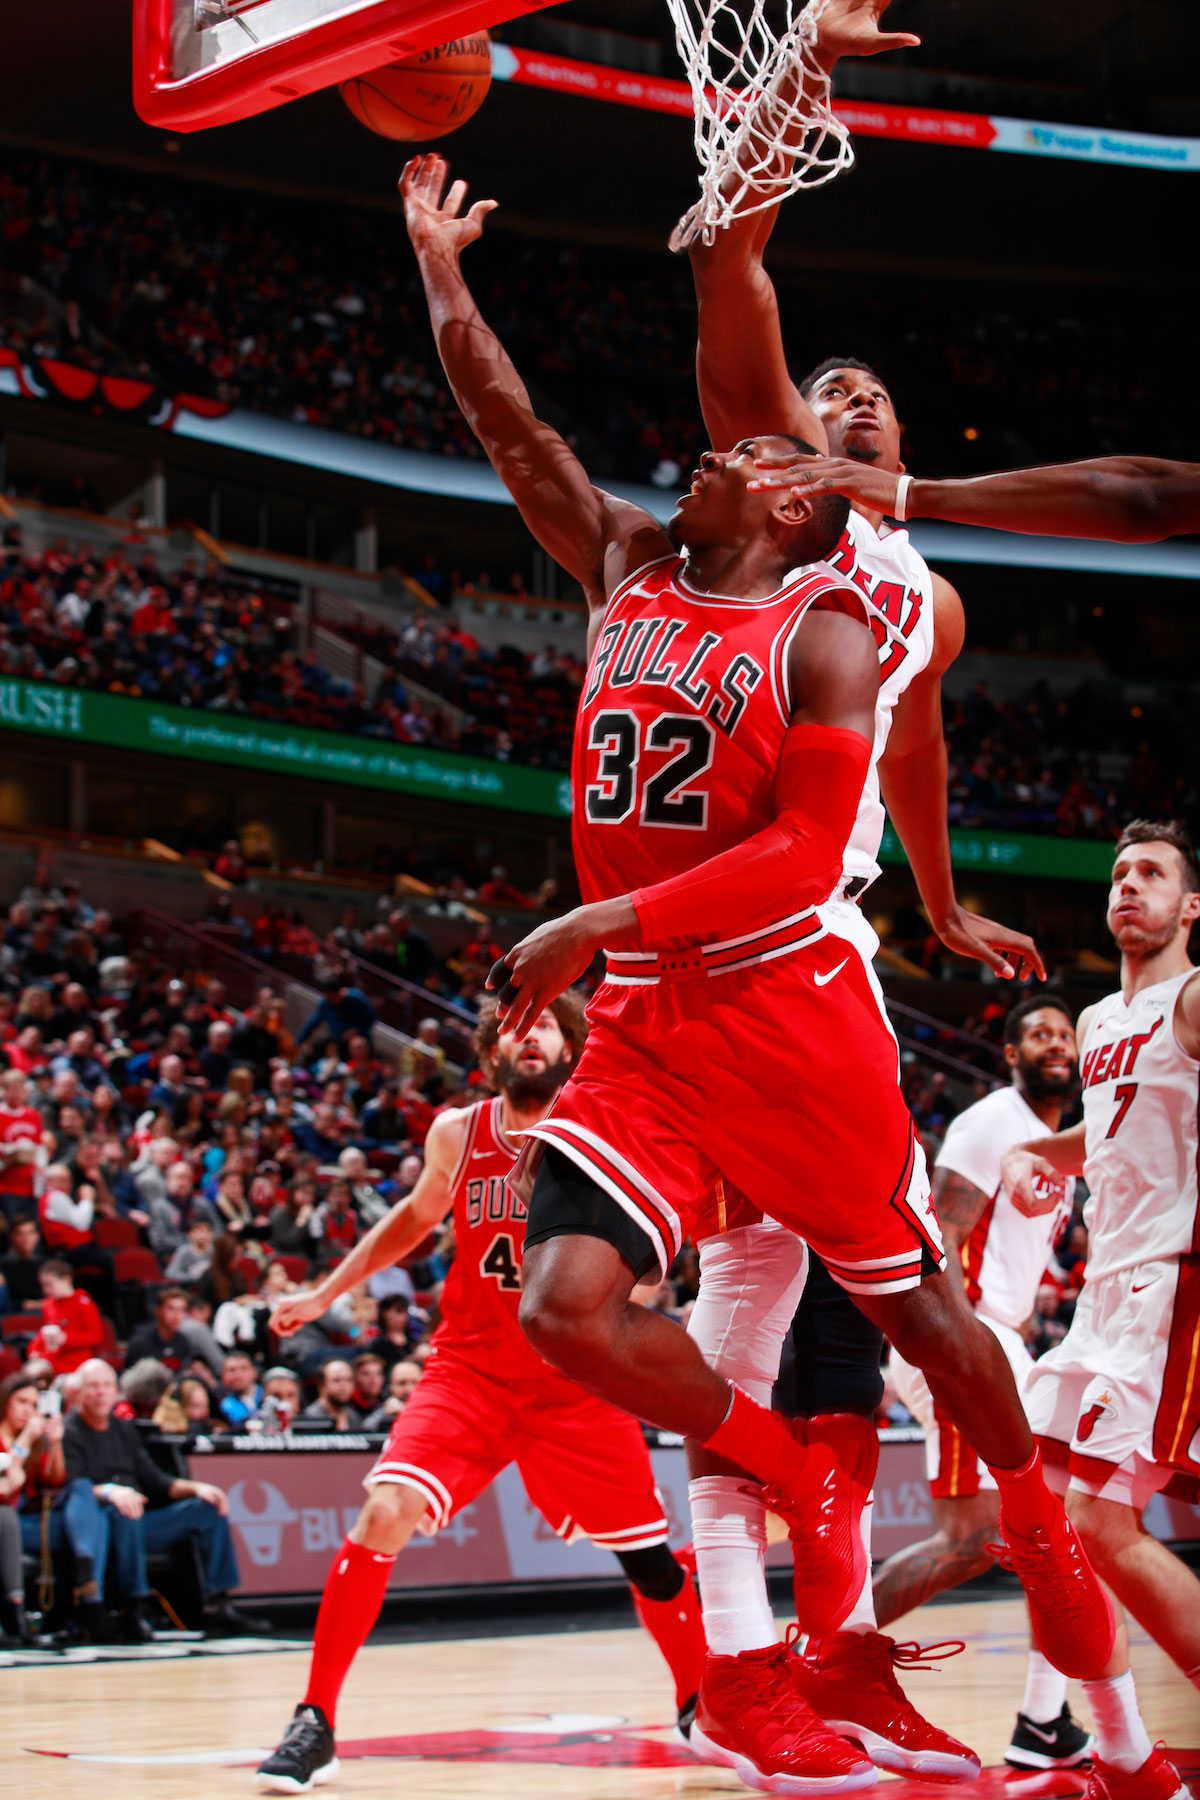 Kris Dunn #32 of the Chicago Bulls shoots a lay up against the Miami Heat on January 15, 2018 at the United Center in Chicago, Illinois.